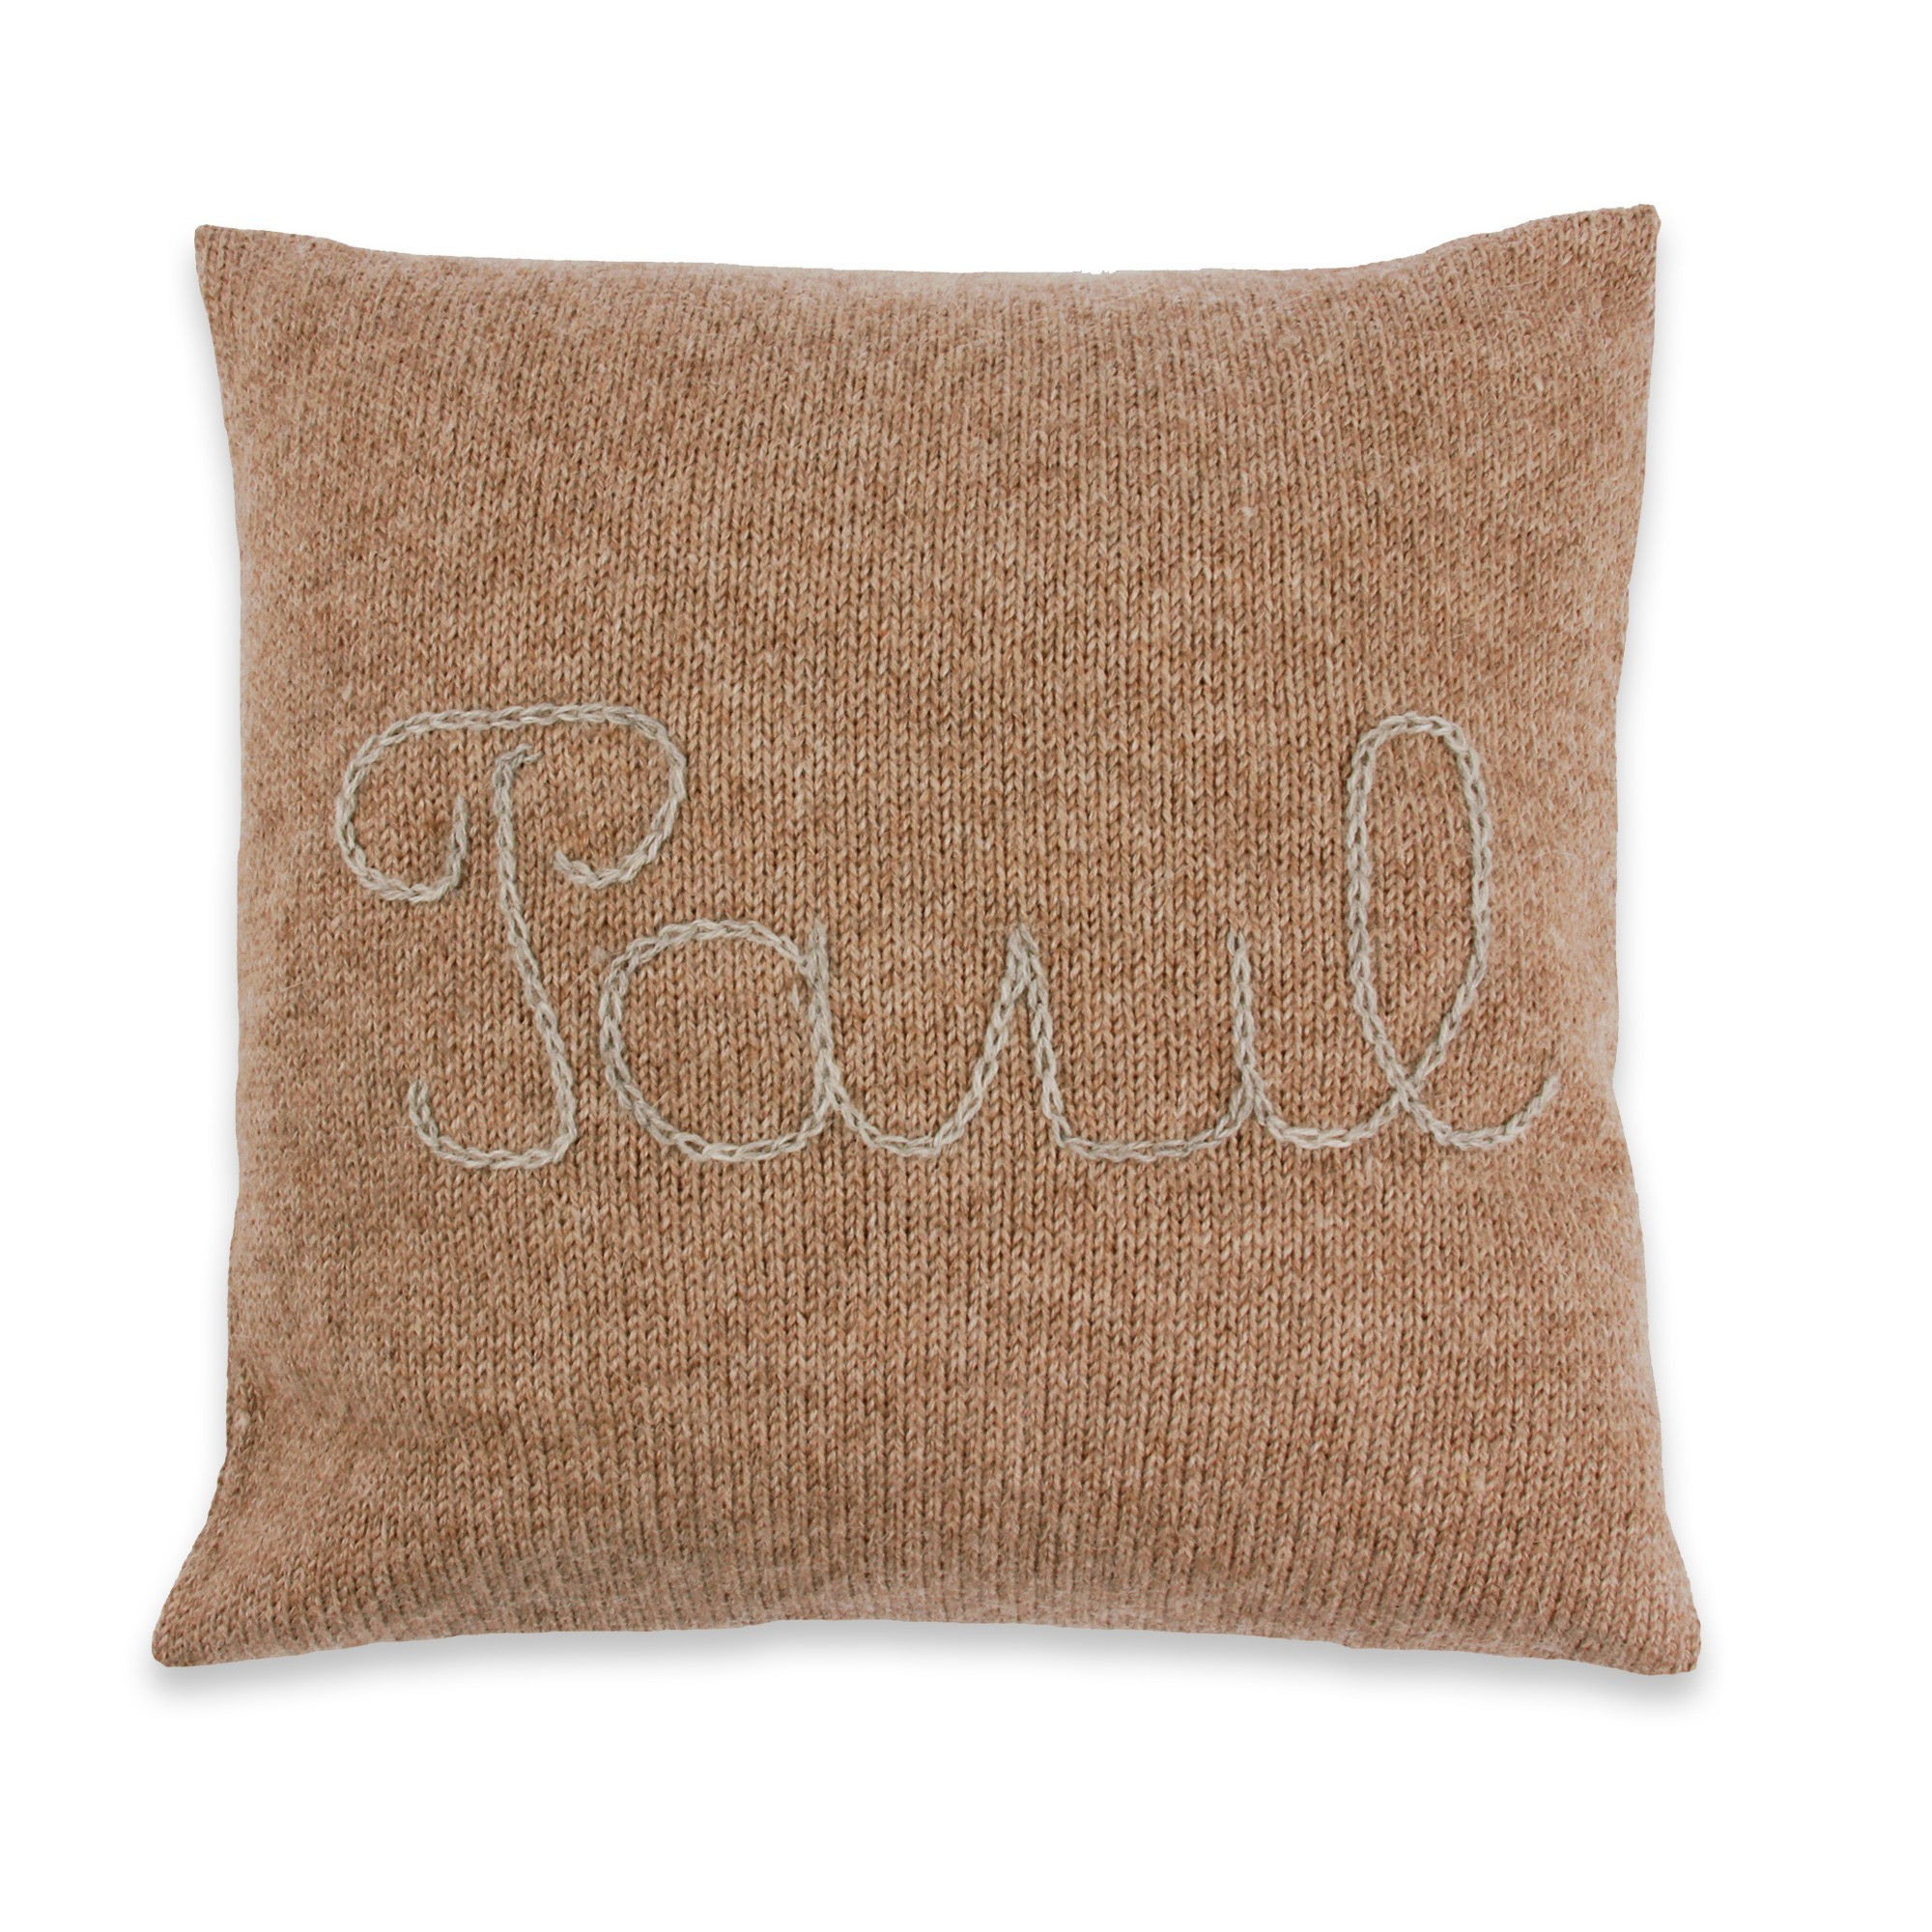 Coussin personnalisable chataigne broderie grise 100% alpaga